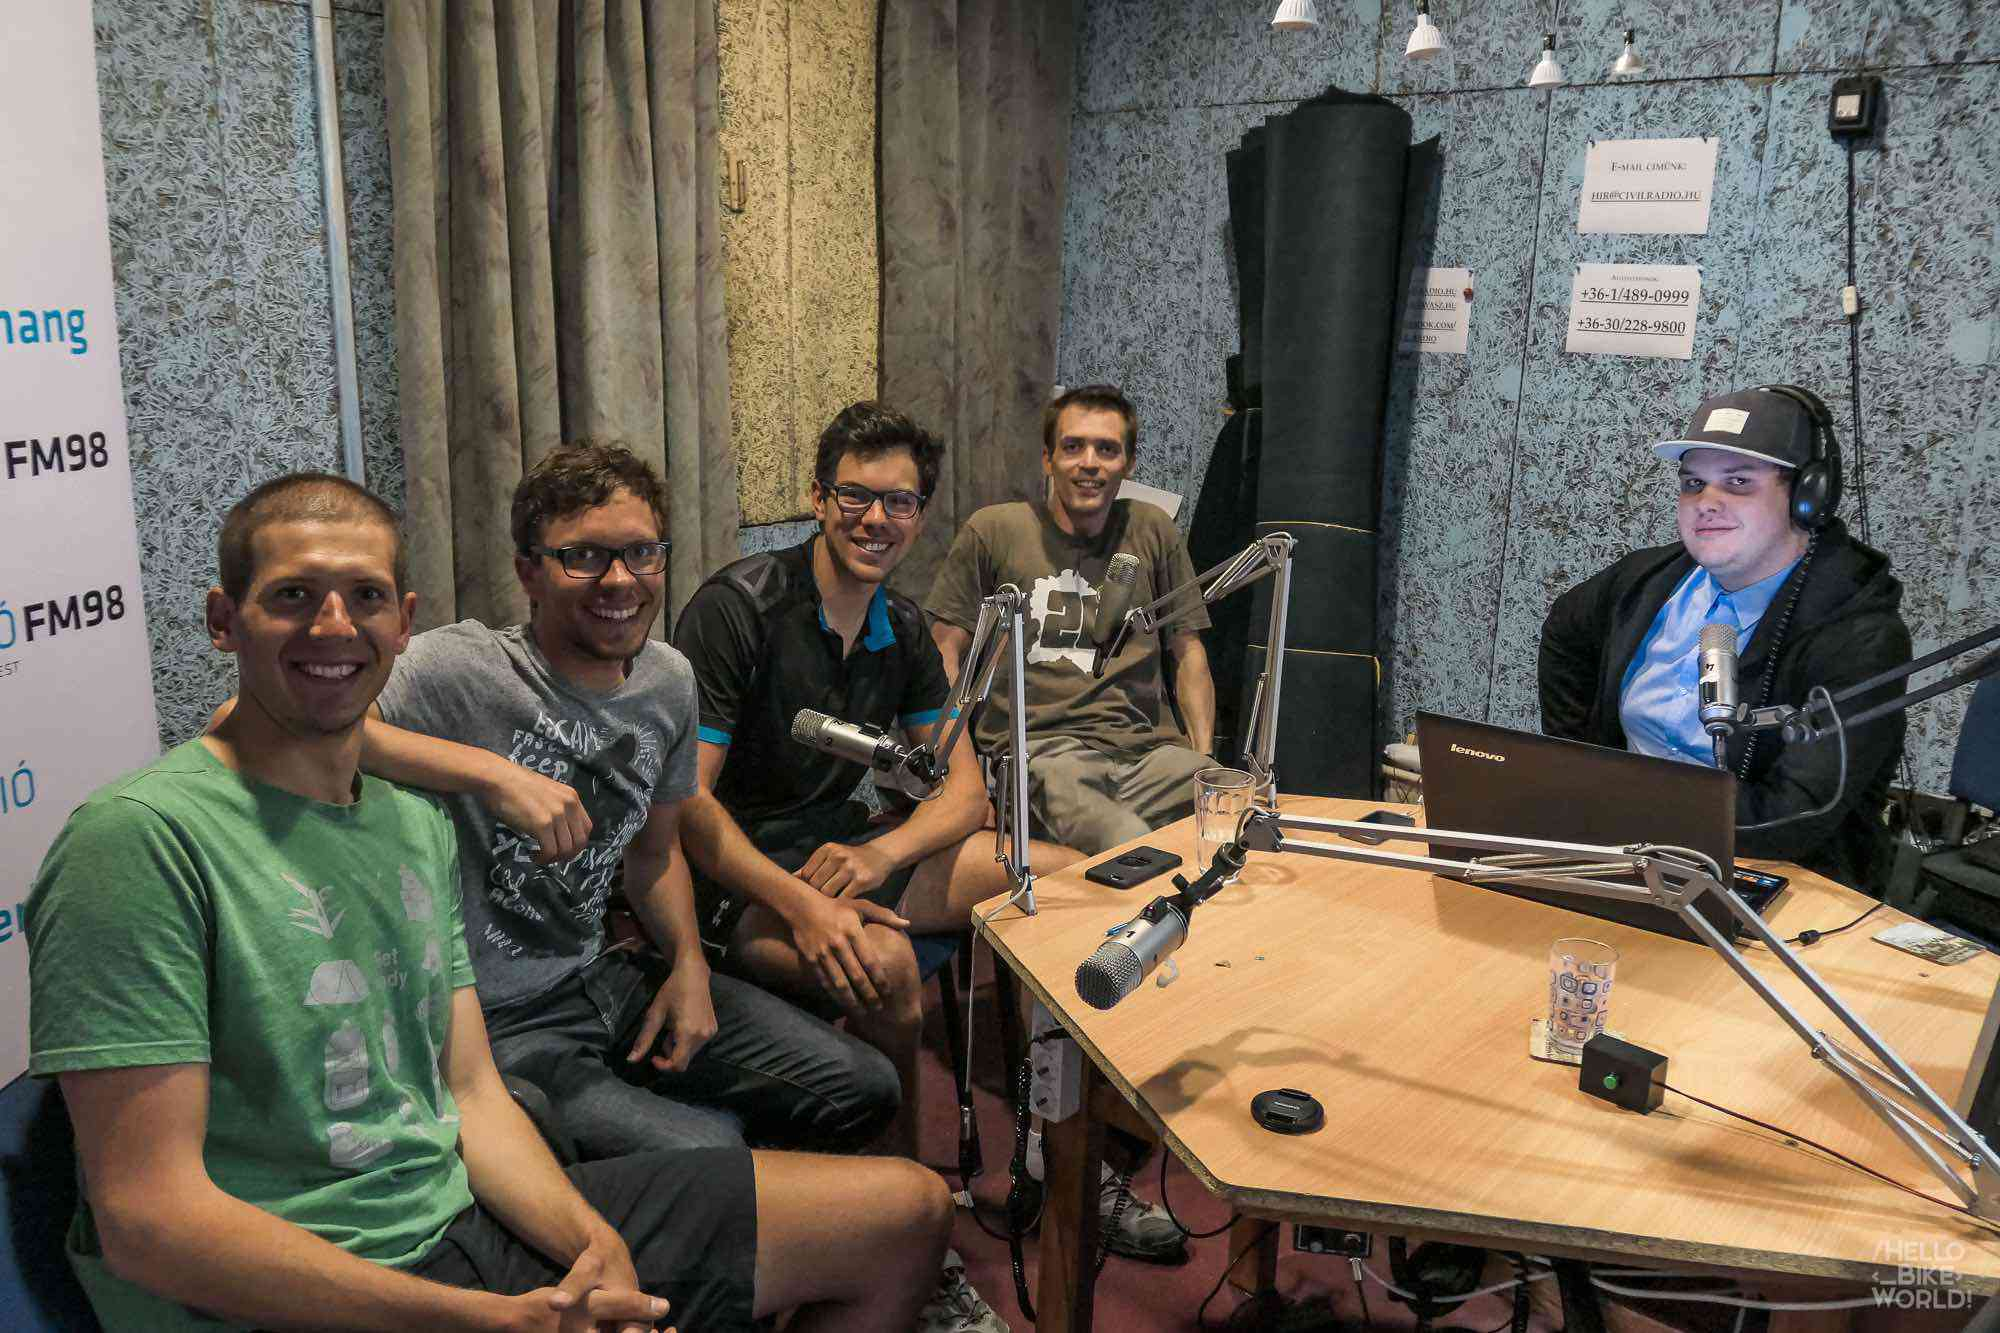 Interview on local radio in Budapest